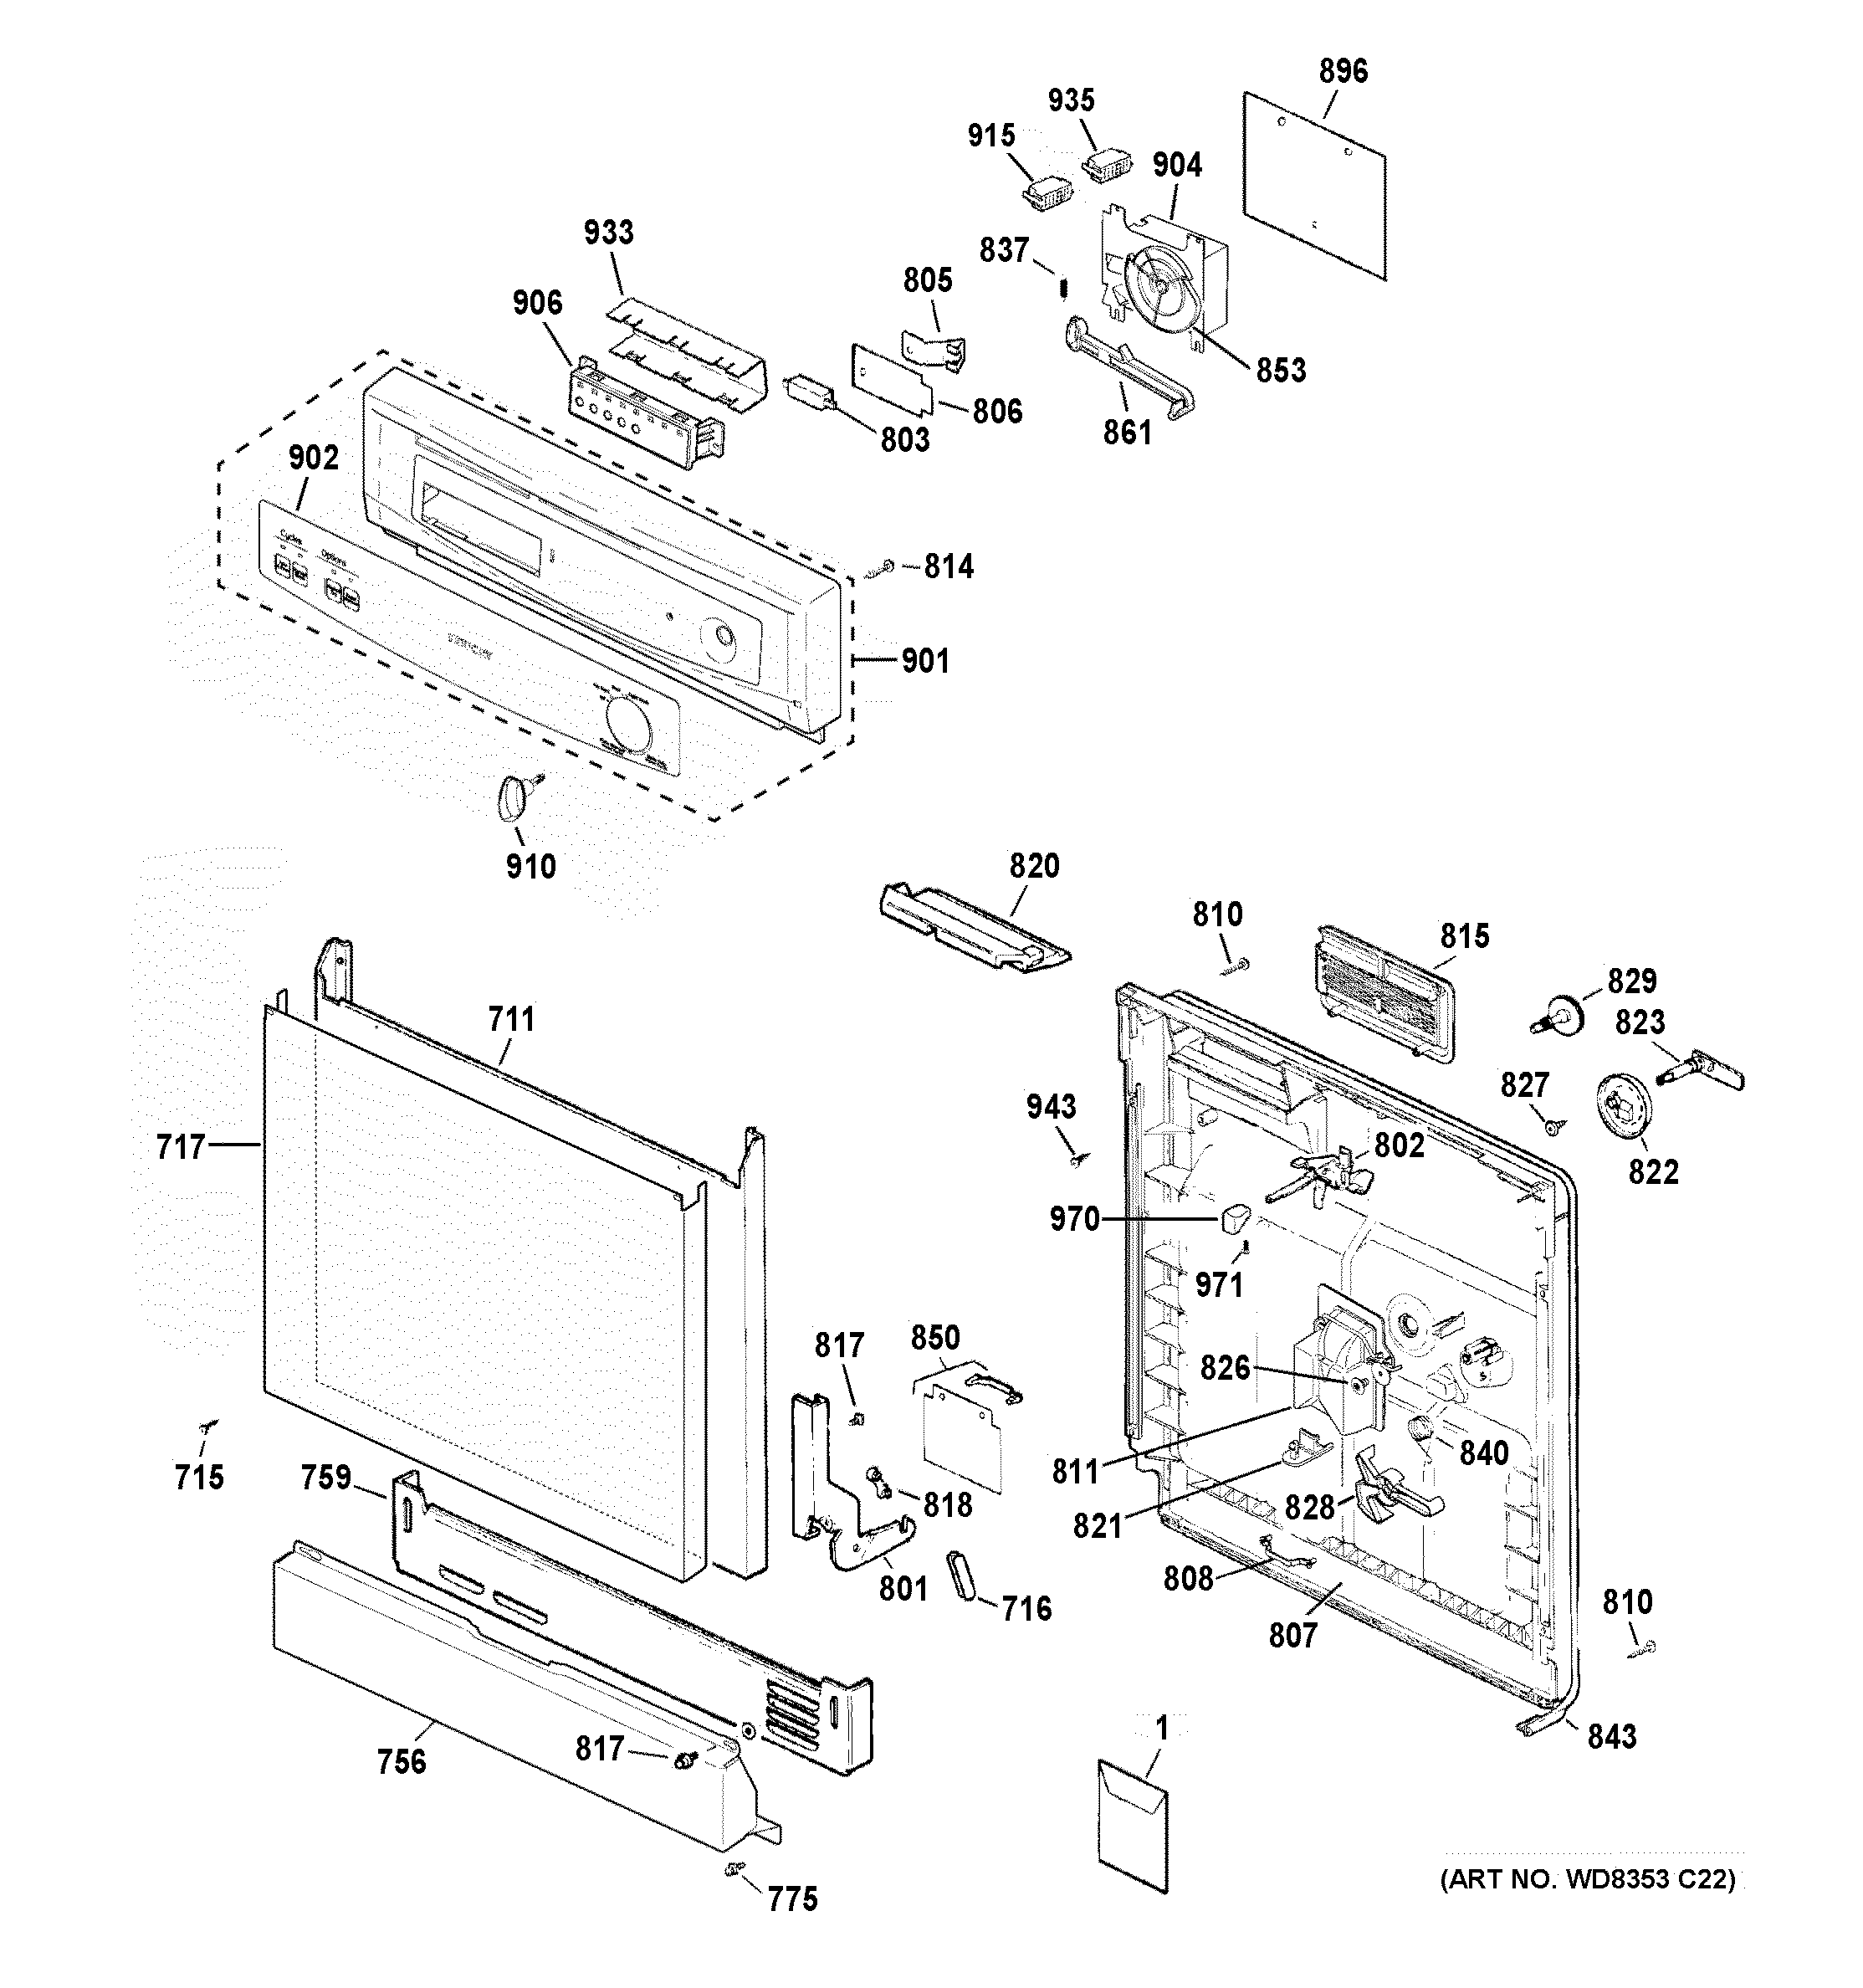 Wiring Diagram For Part Number M G On A Kenmore Dryer